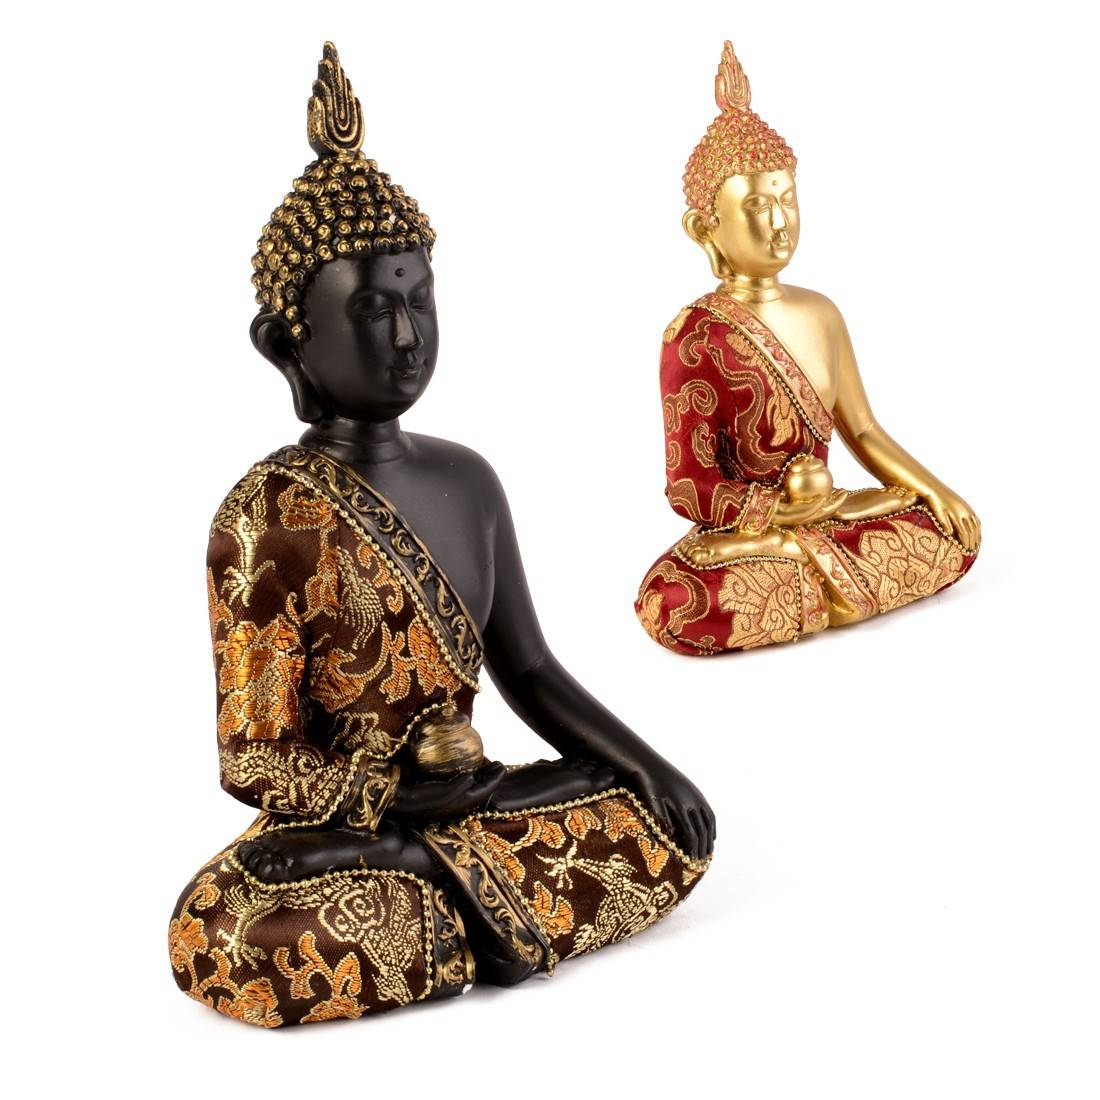 statuette bouddha thai artisanat du monde d co pas cher planete. Black Bedroom Furniture Sets. Home Design Ideas